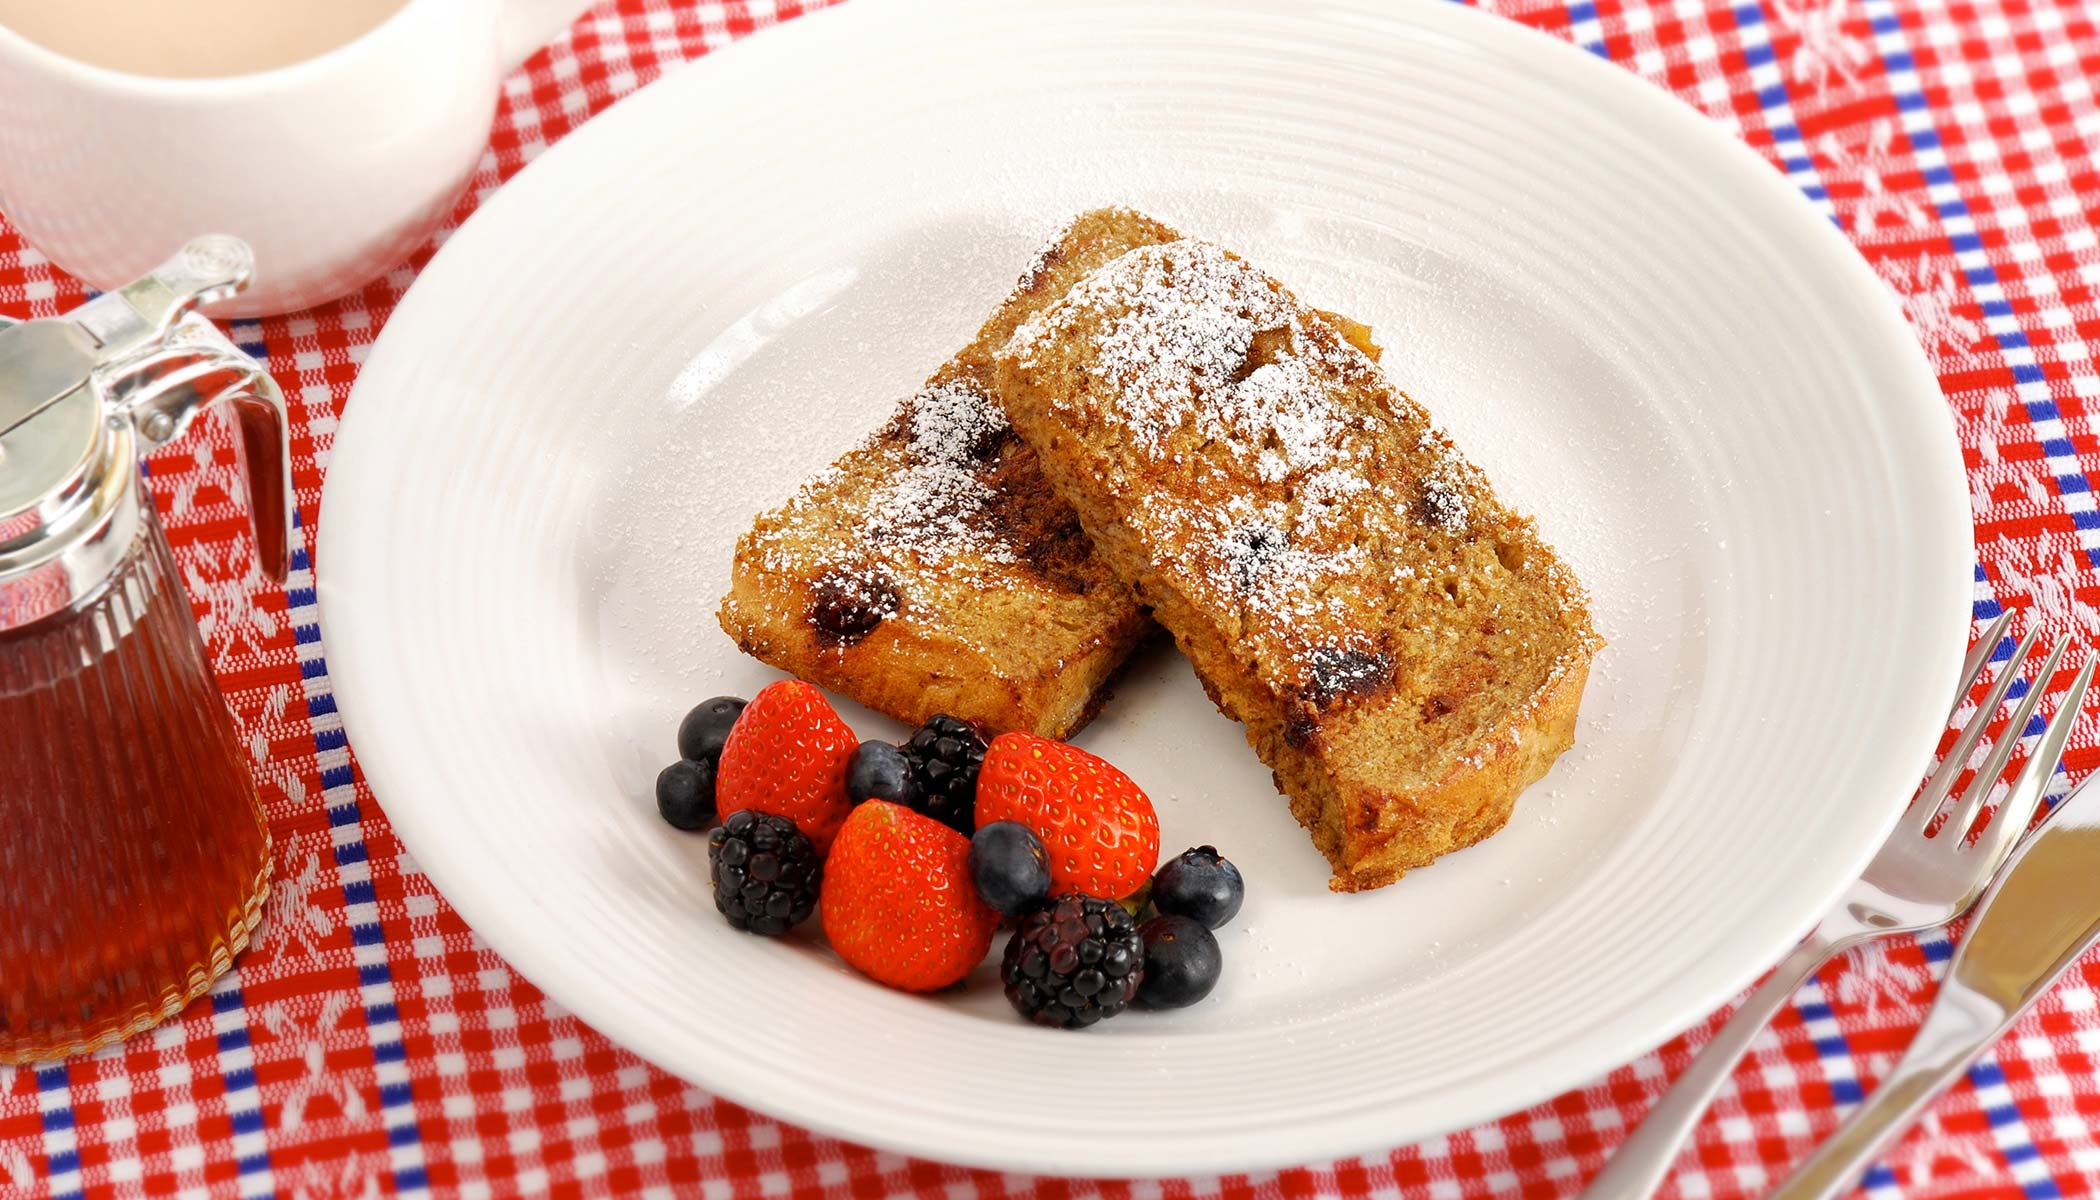 Chocolate Chip French Toast